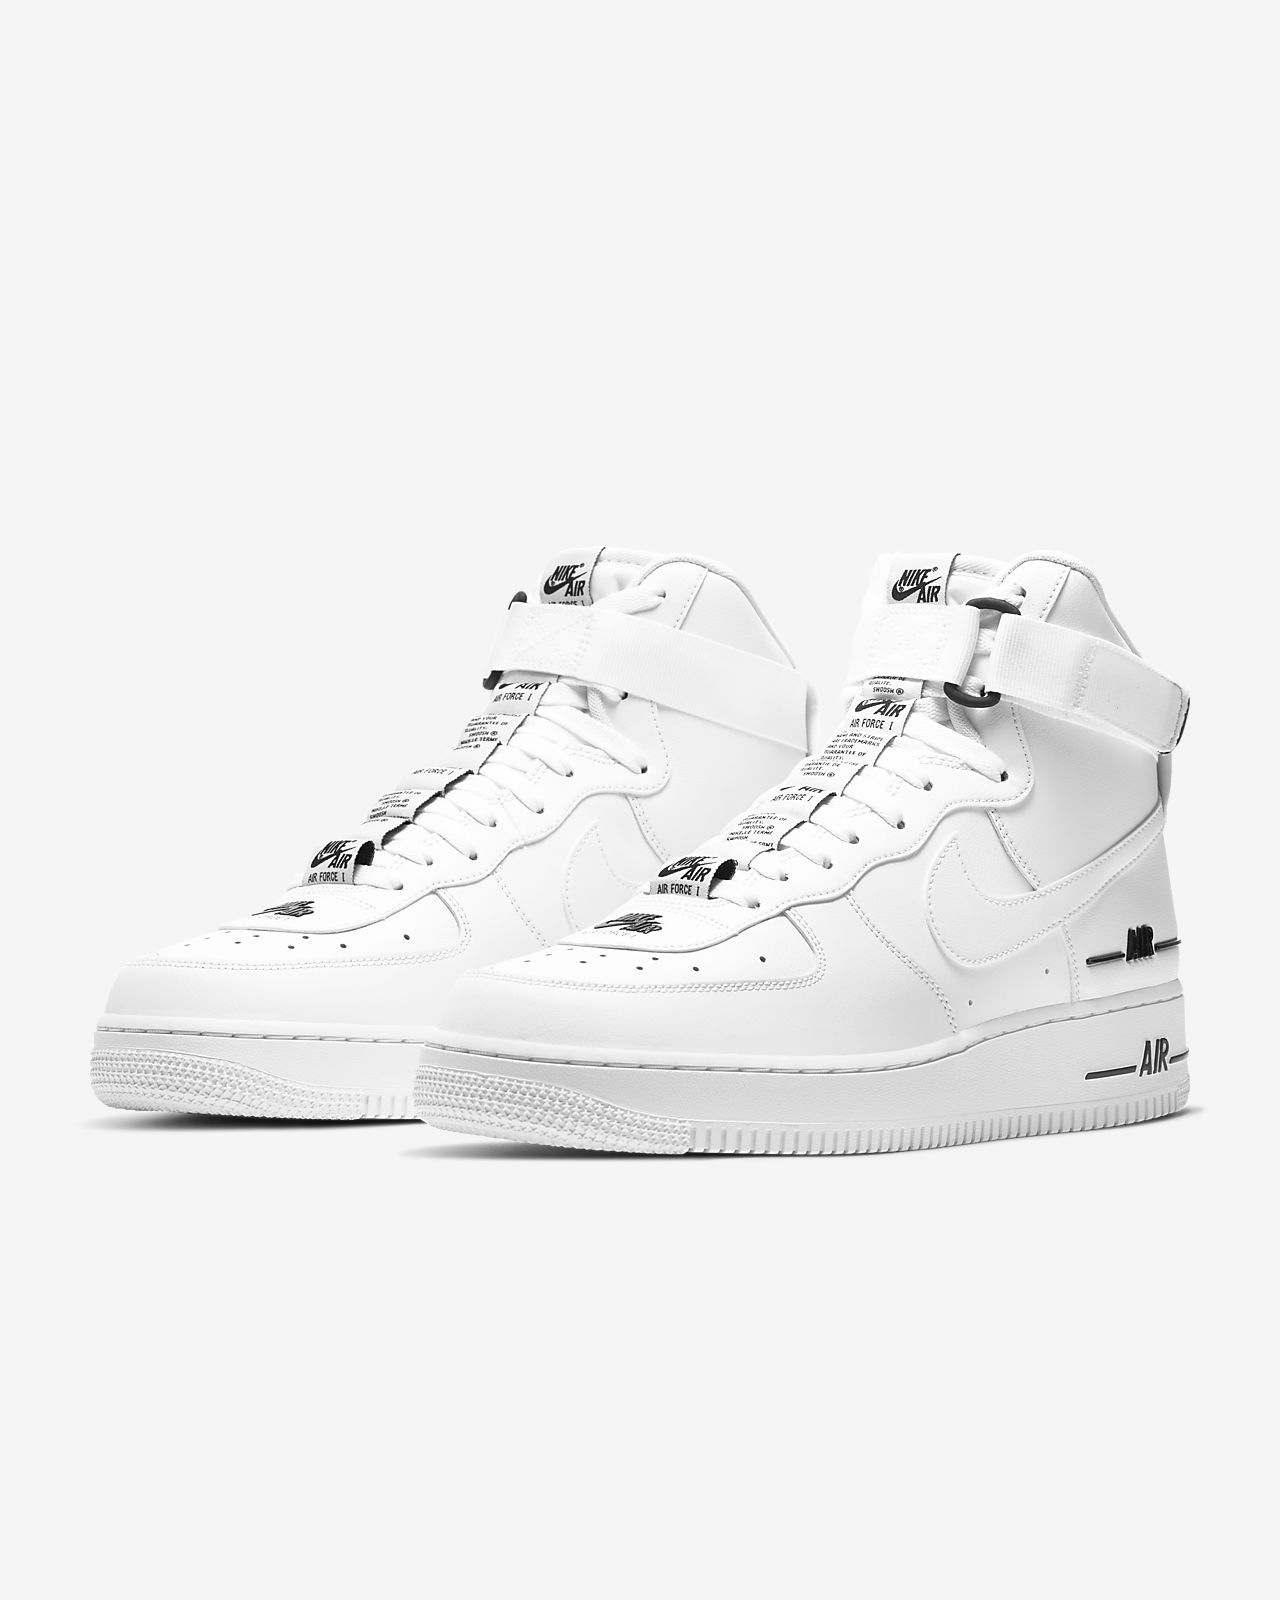 Nike Air Force 1 High '07 LV8 3 Men's Shoe